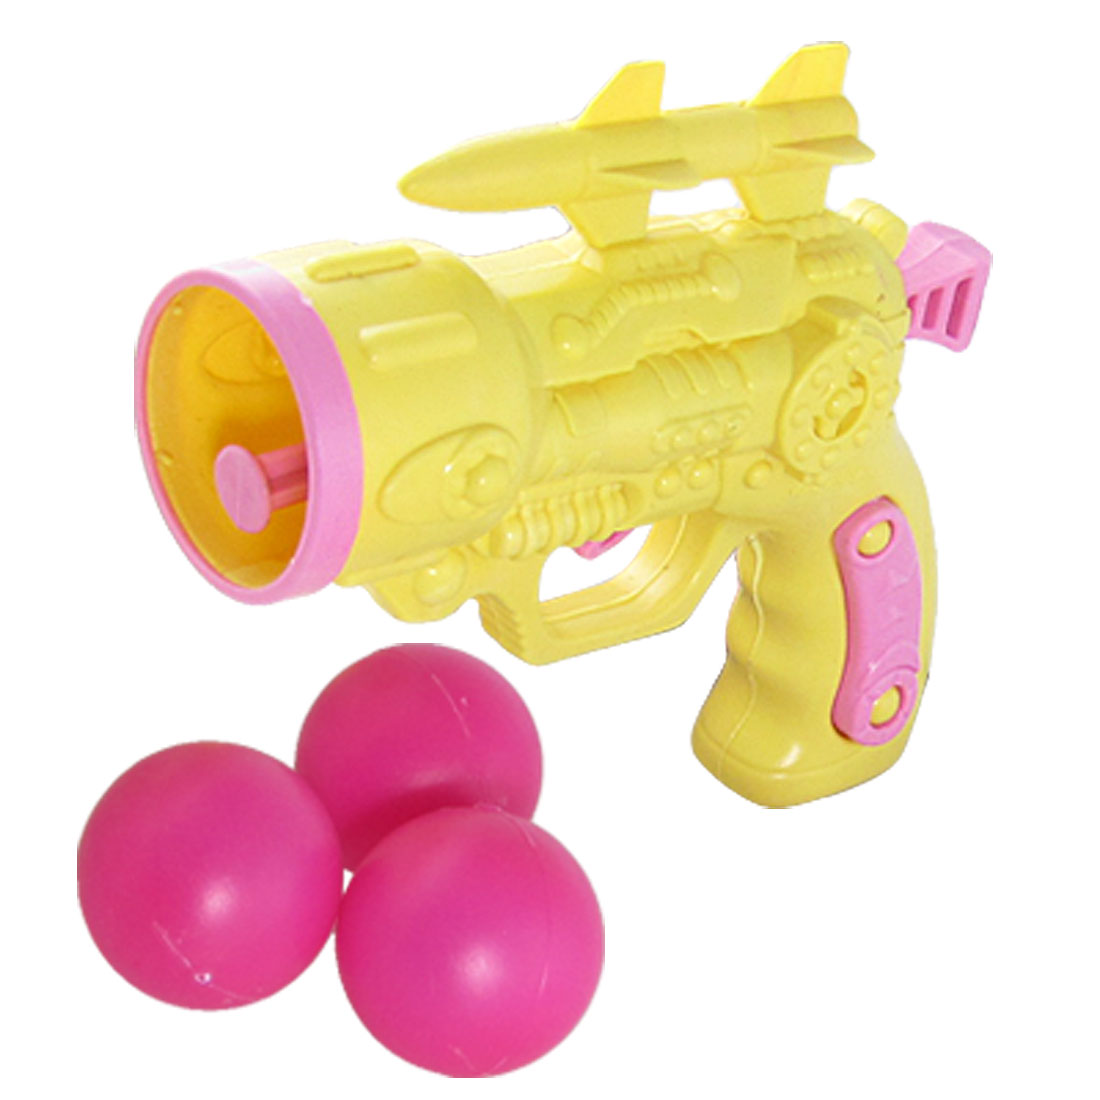 Children Plastic Yellow Gun Fight Toy w 3 Pcs Table Tennis